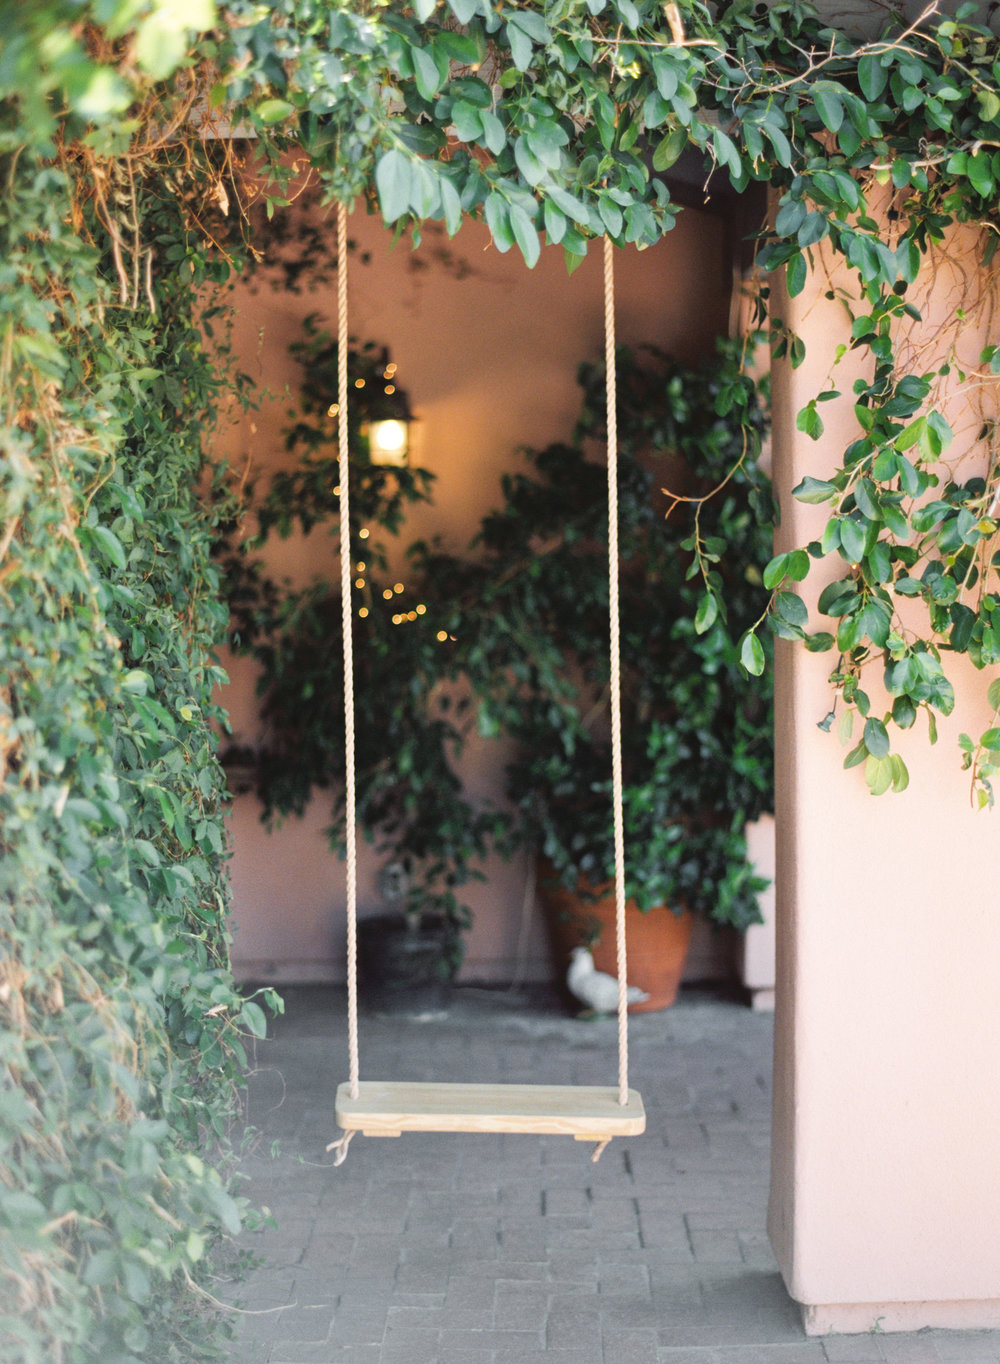 Swing in courtyard with vines